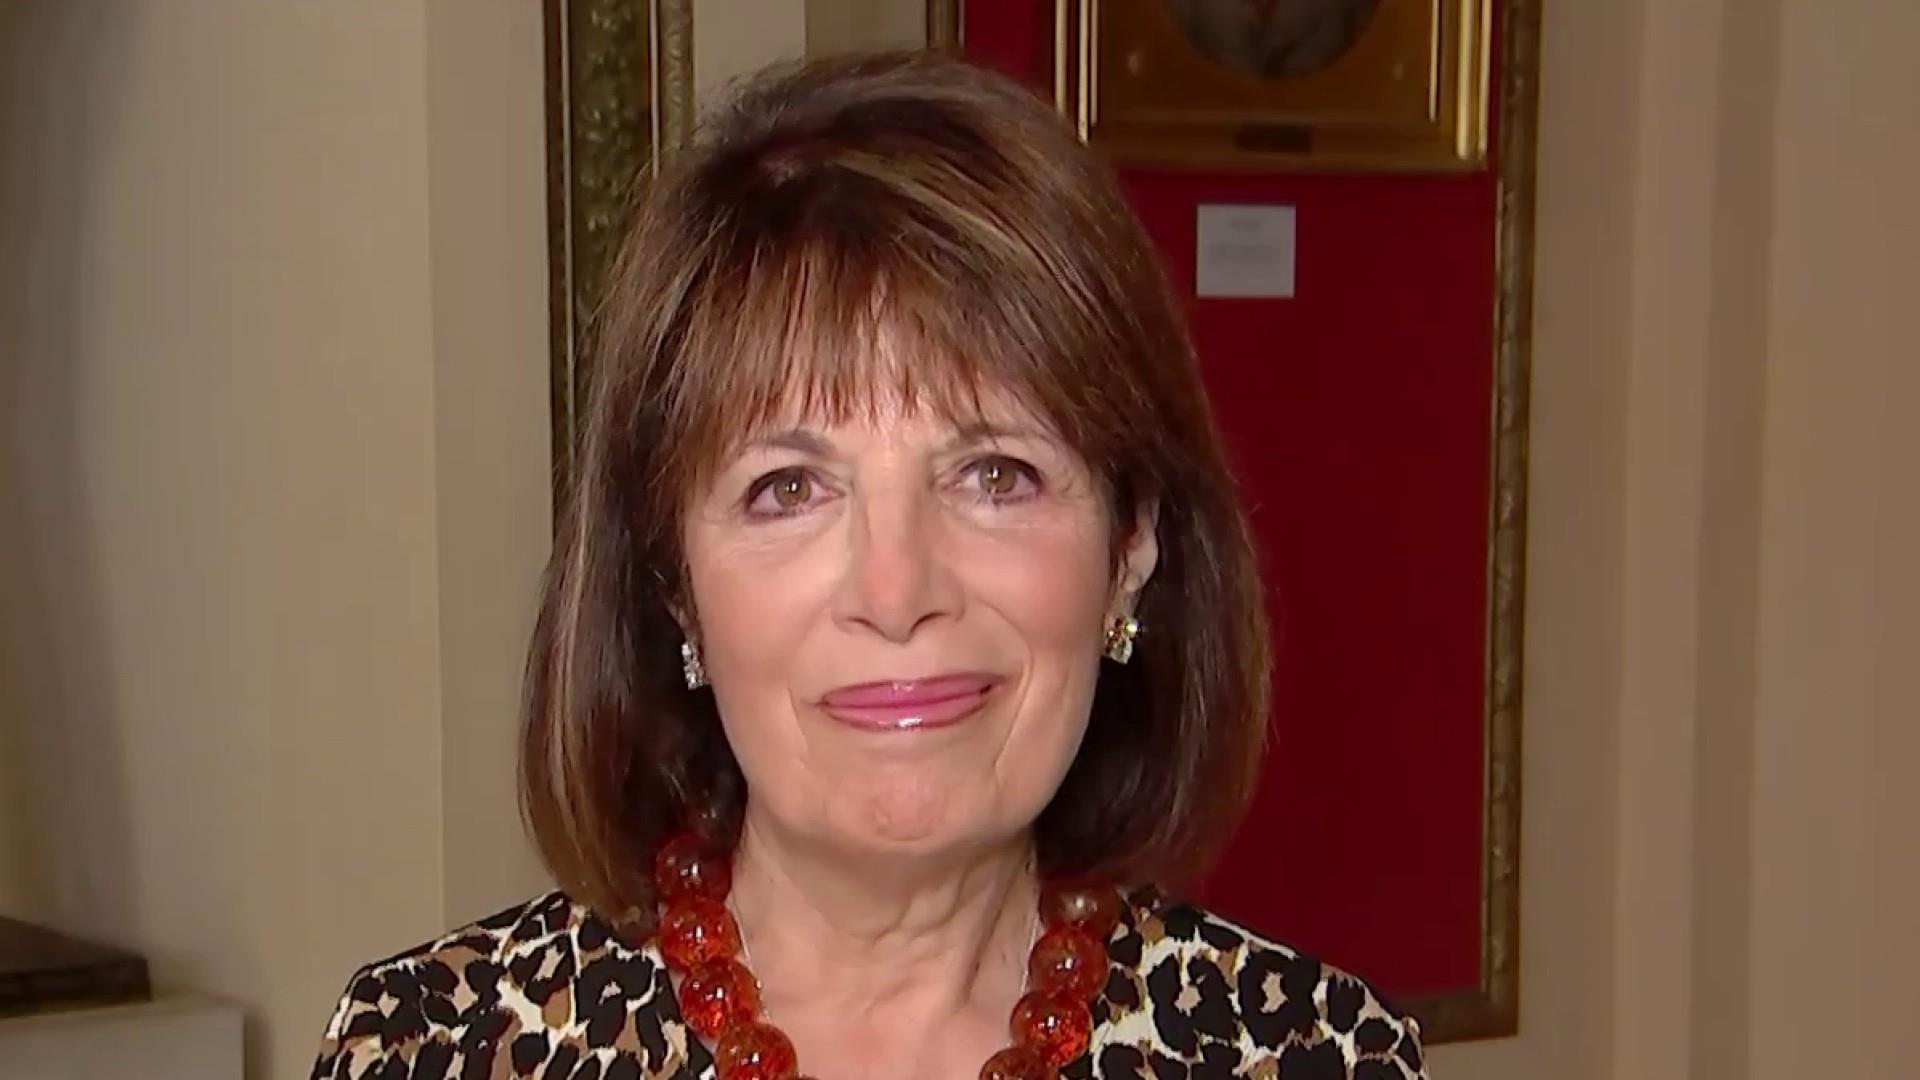 Rep. Speier: White House aides who testify are 'true heroes'